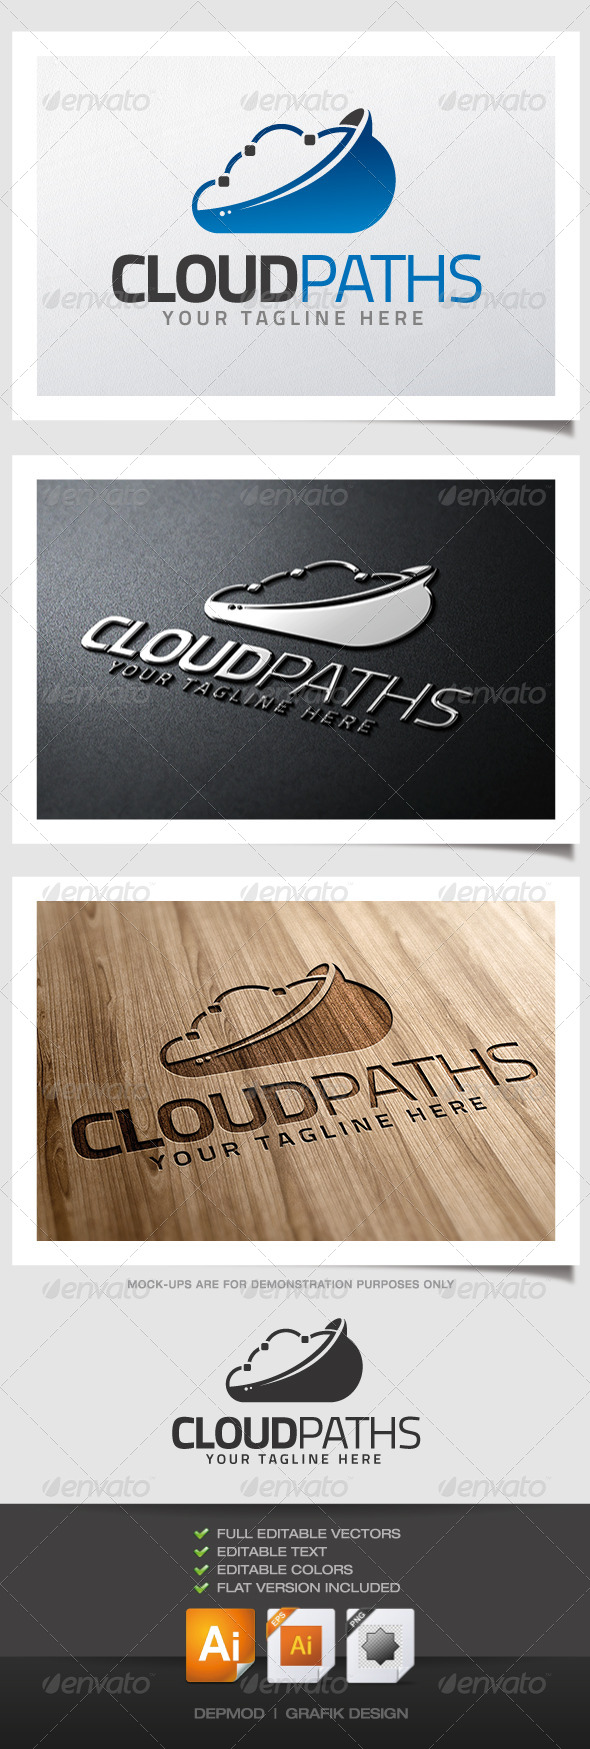 GraphicRiver Cloud Paths logo 4562683